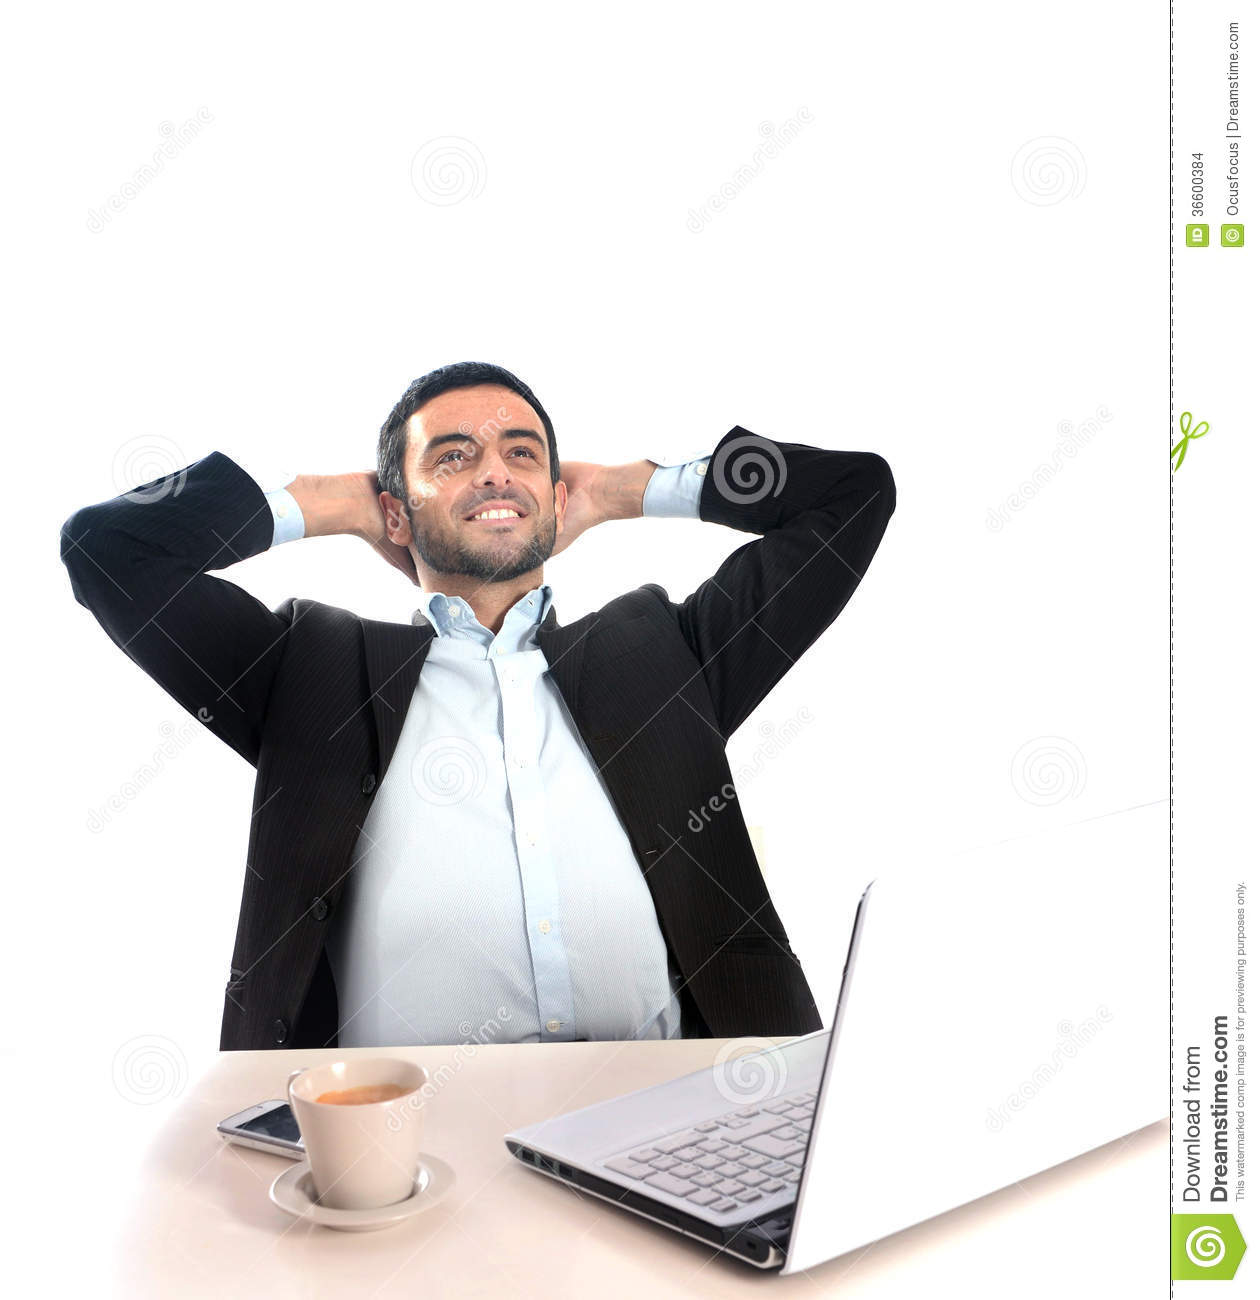 successful-businessman-relaxed-satisfied-business-man-computer-happy-leaning-back-his-chair-face-expression-36600384.jpg